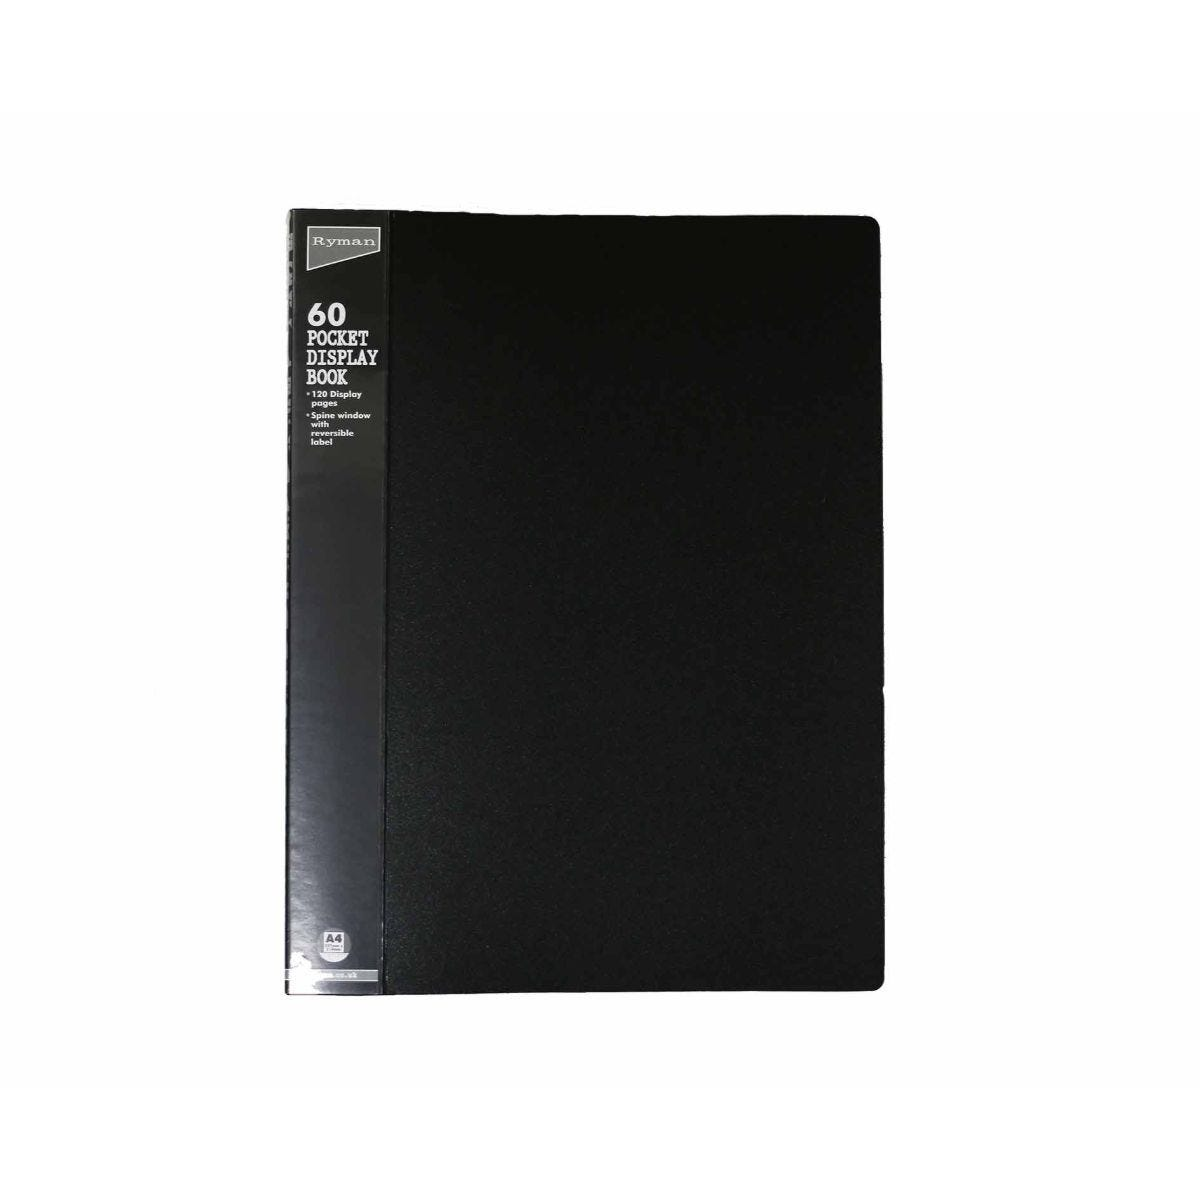 Ryman Easyview Display Book A4 60 Pockets